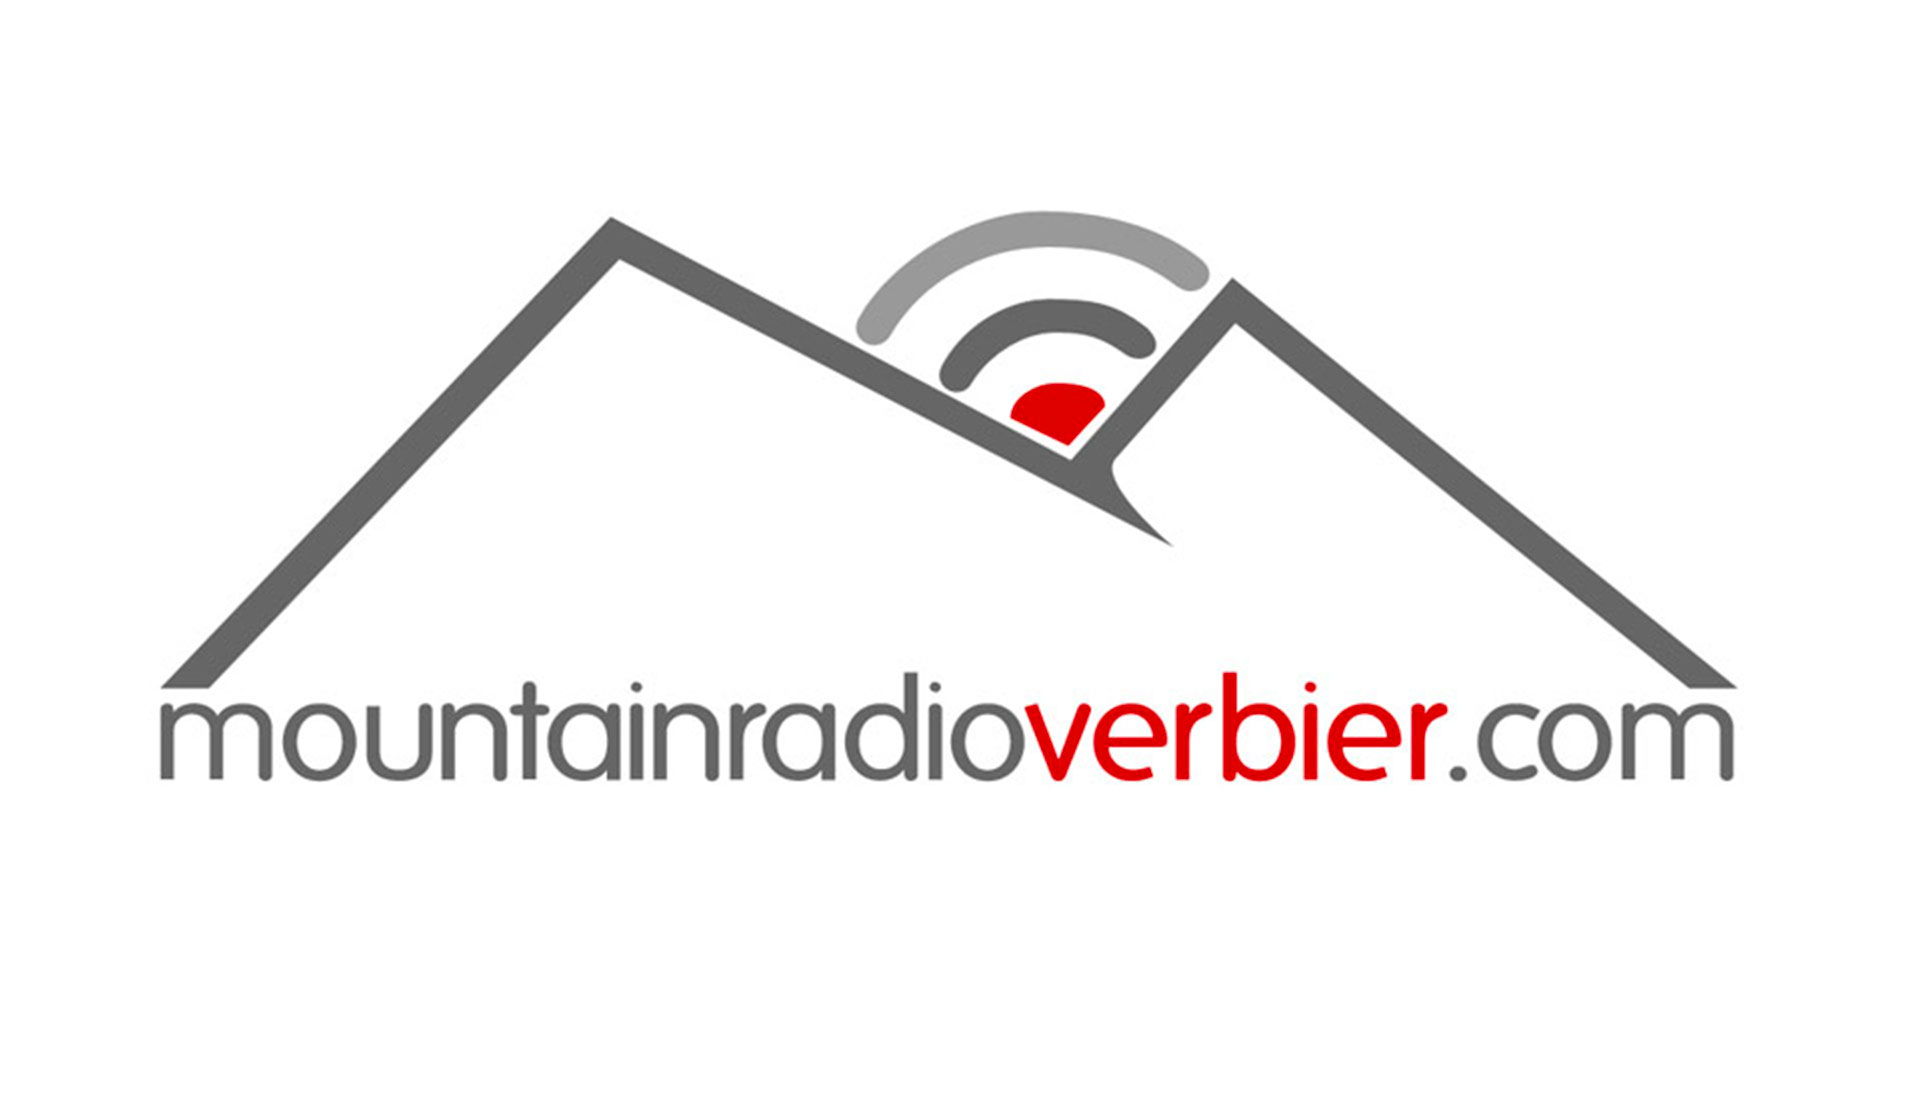 Mountain Radio